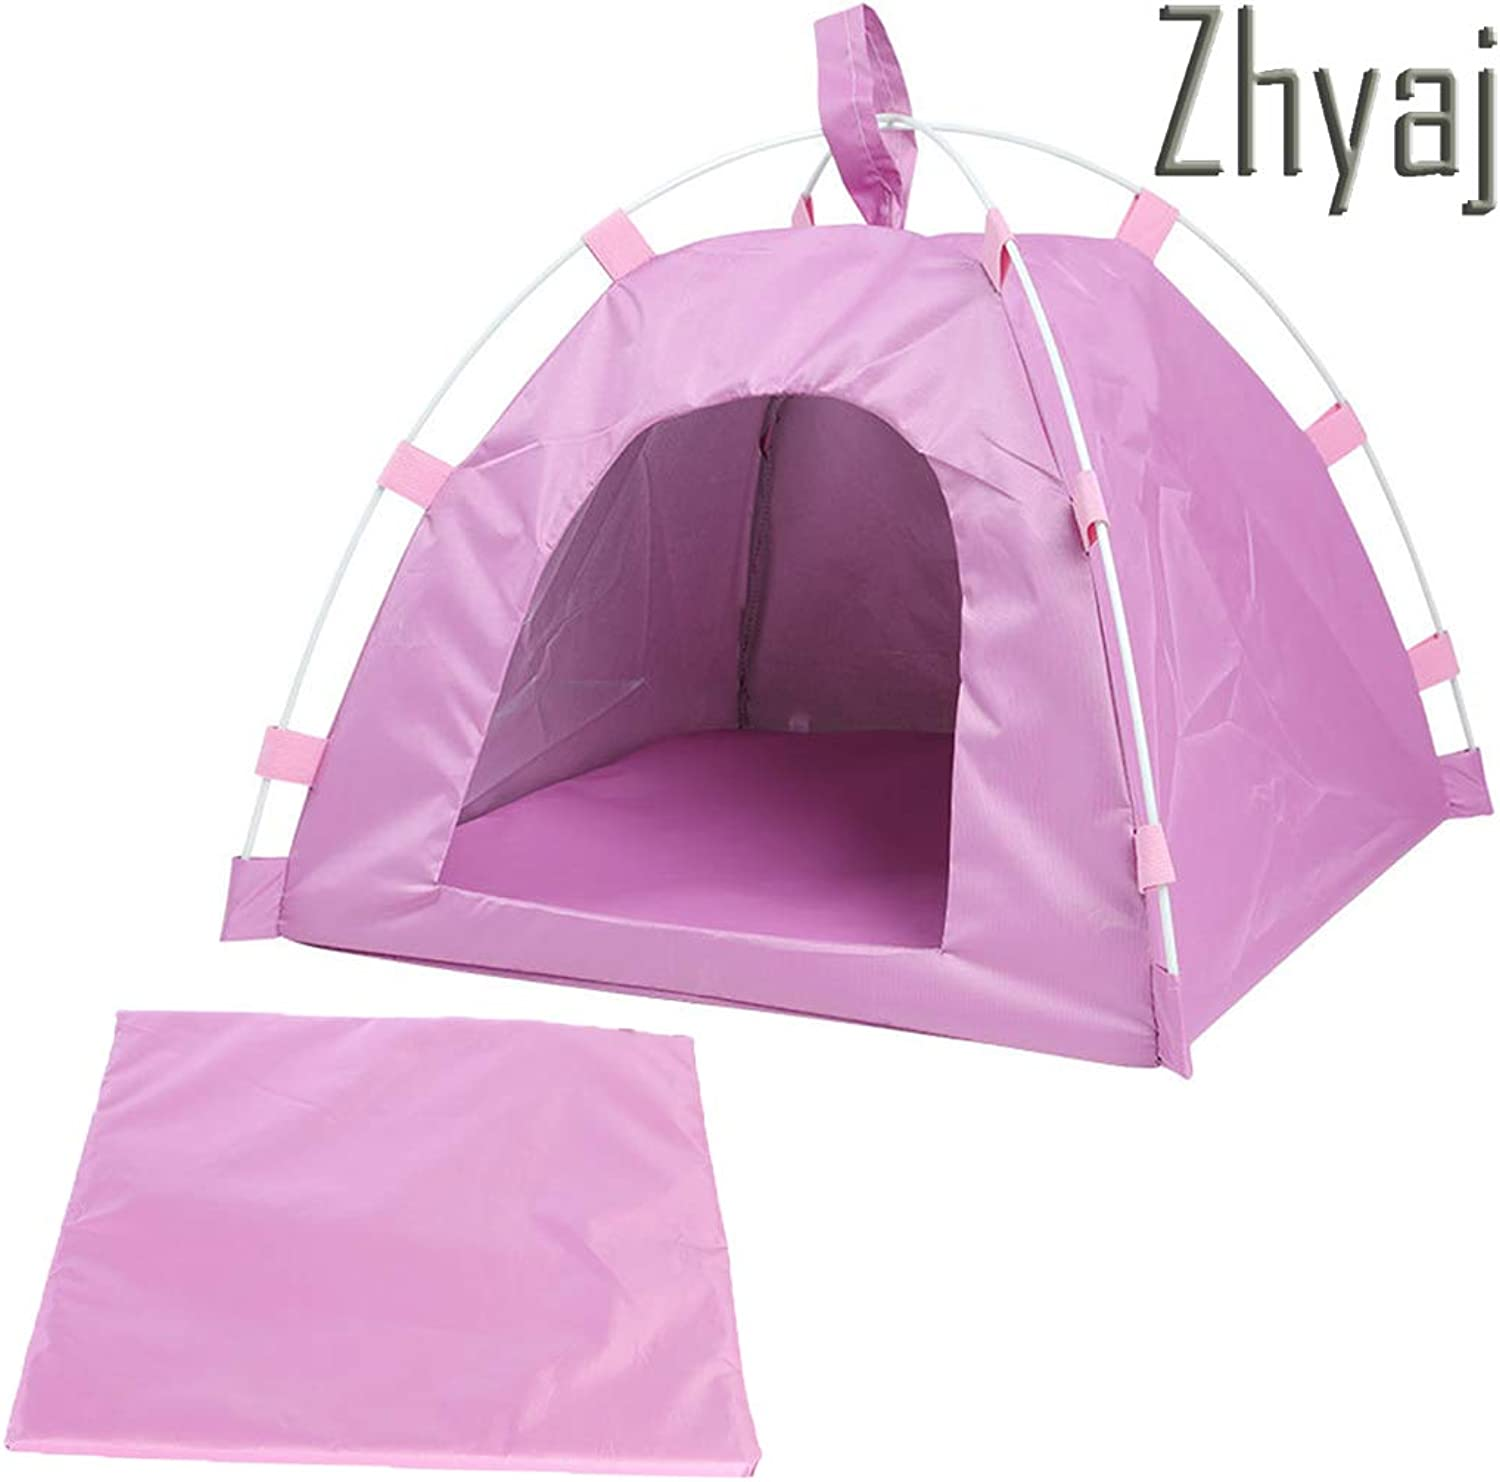 Dog Tent, Waterproof Breathable Stable and Durable Easy to Clean Foldable Pet Tent Dog Bed Nest for Pet Cat and Dog Easy to Carry Dog House,A